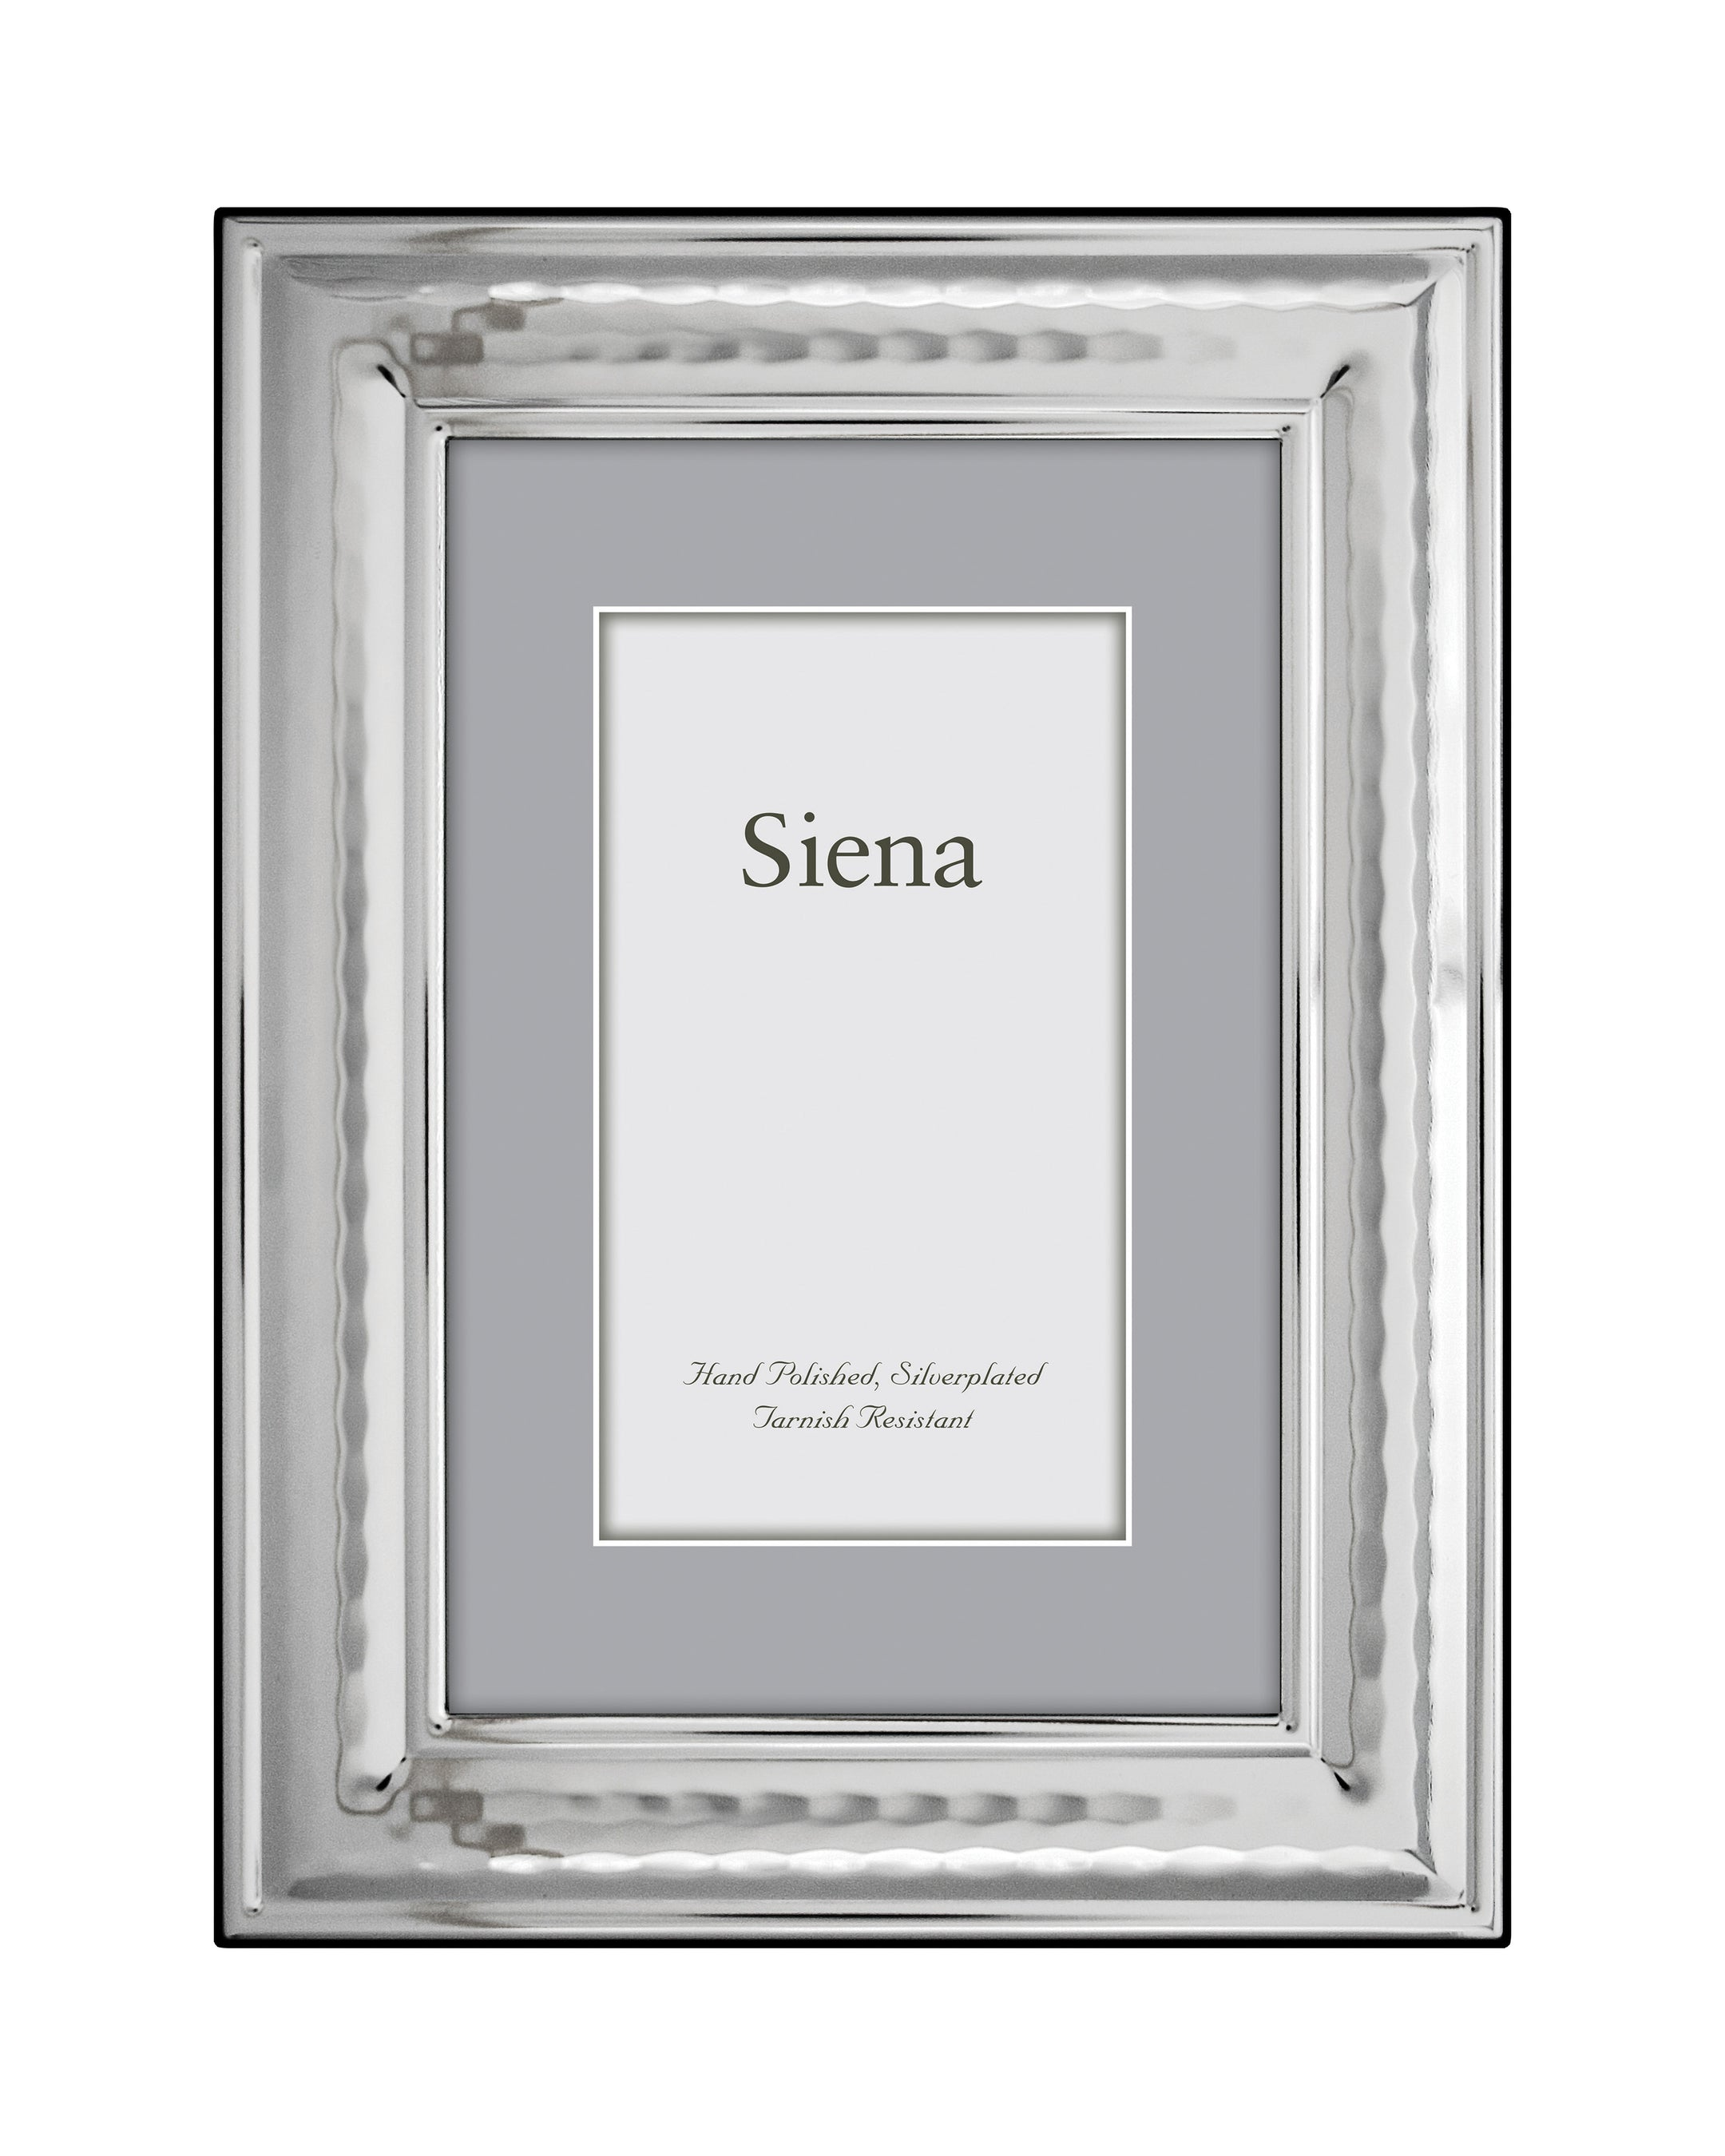 Siena Hammered Silverplate Frame